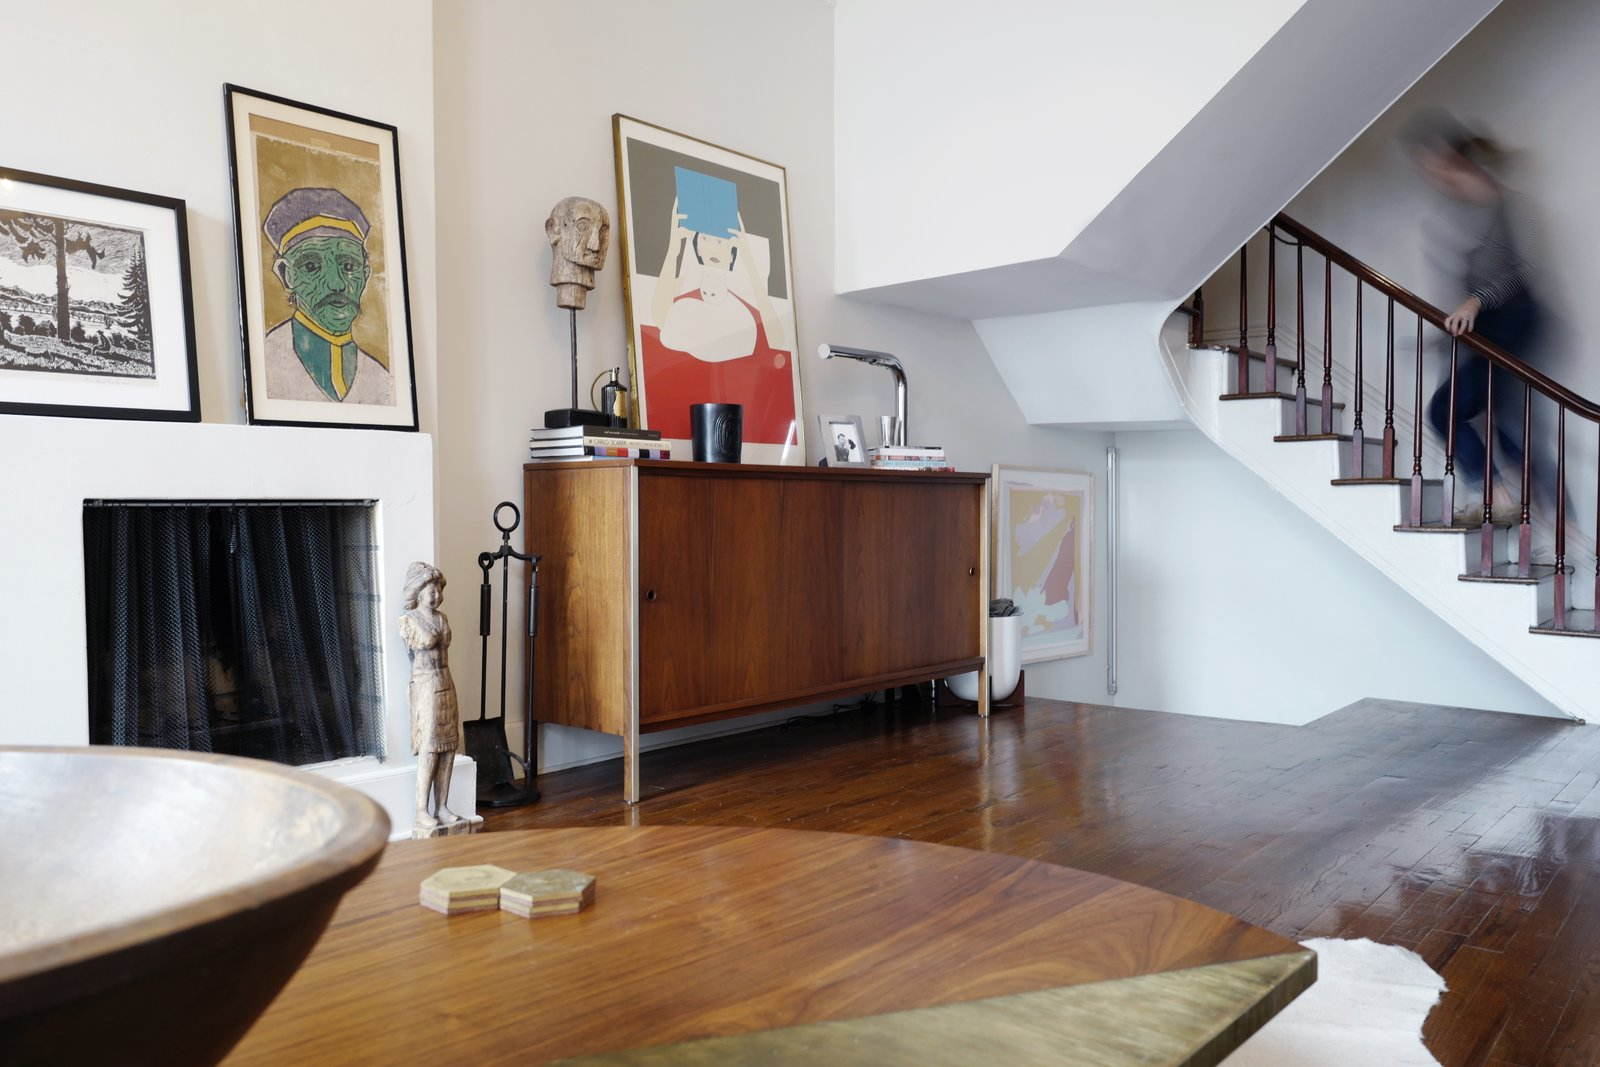 Living Room, Dark Hardwood Floor, Table Lighting, Standard Layout Fireplace, Wood Burning Fireplace, Media Cabinet, Coffee Tables, and Storage  Photo 5 of 16 in A Design Duo's 19th-Century Brooklyn Townhouse Is Filled With Art They Love